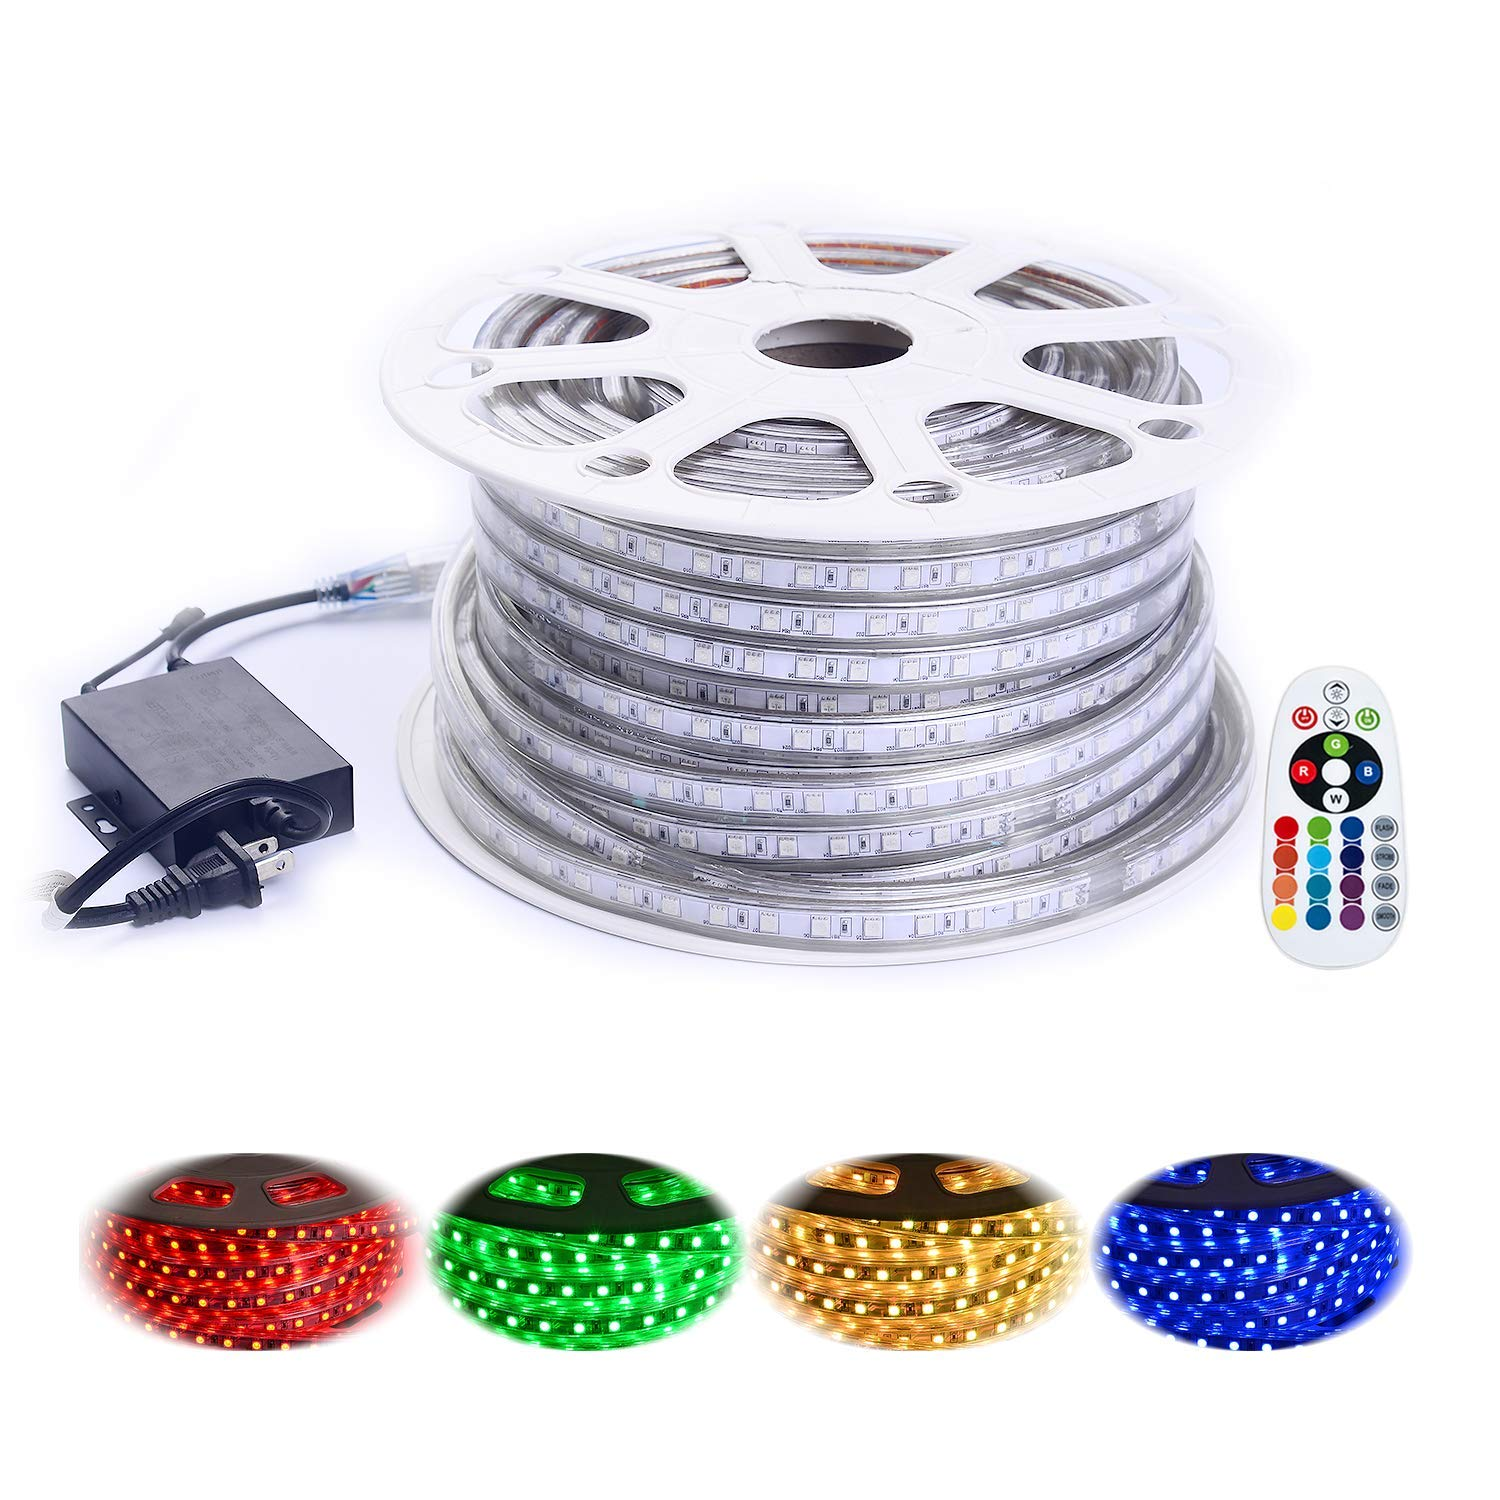 Shine Decor 110V 7x15mm Led RGB Strip Light, 14 Colors Rope Lights, Waterproof 5050 60Leds/M, 150ft